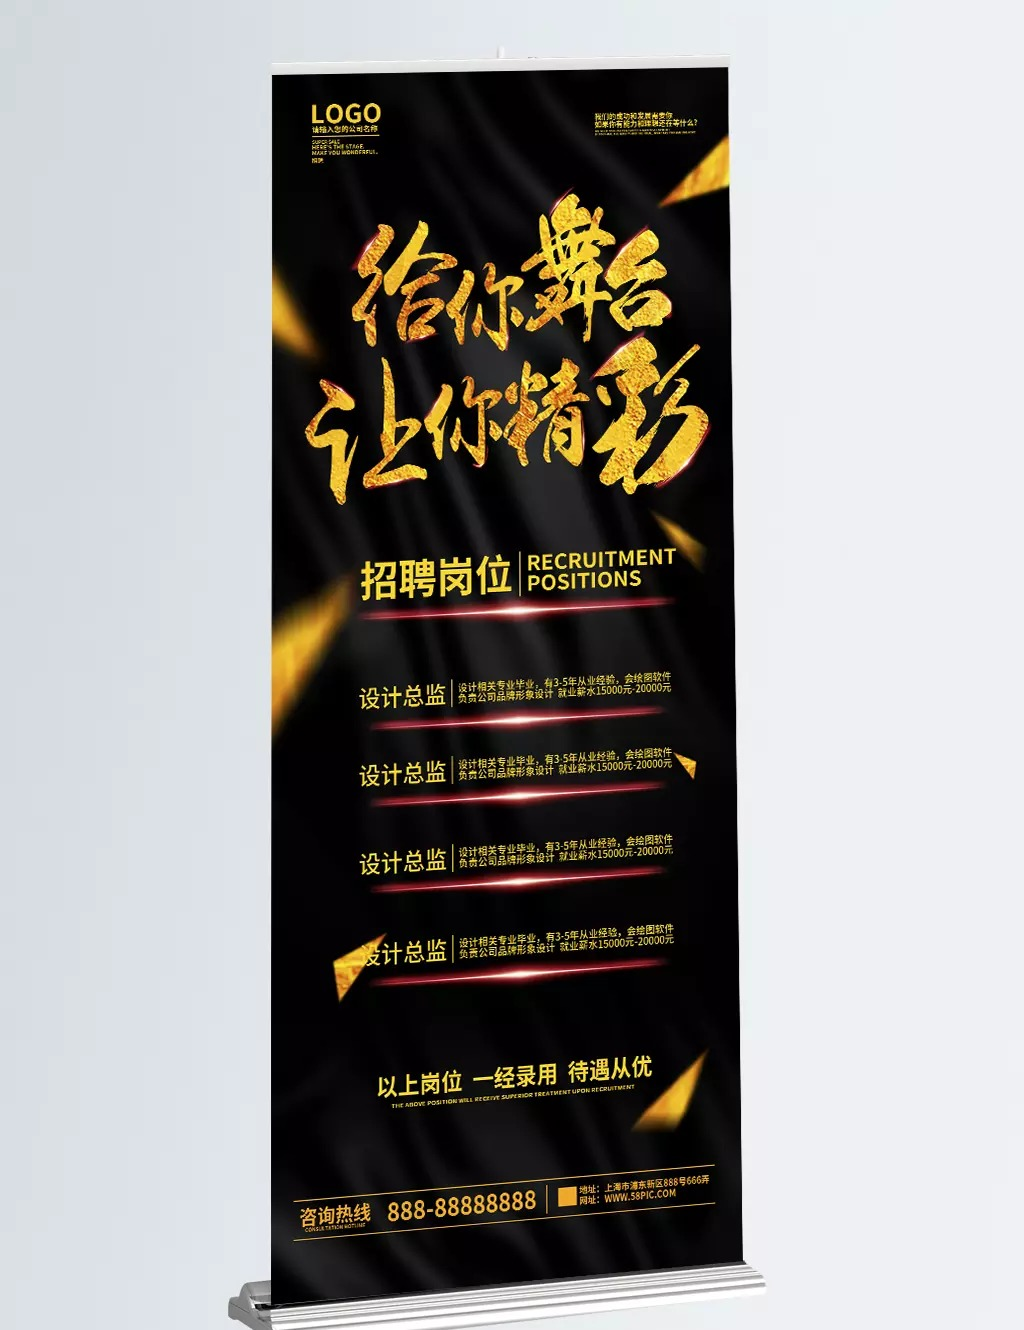 Exhibition Stand Roll Up : High end atmospheric black gold wind recruitment exhibition stand